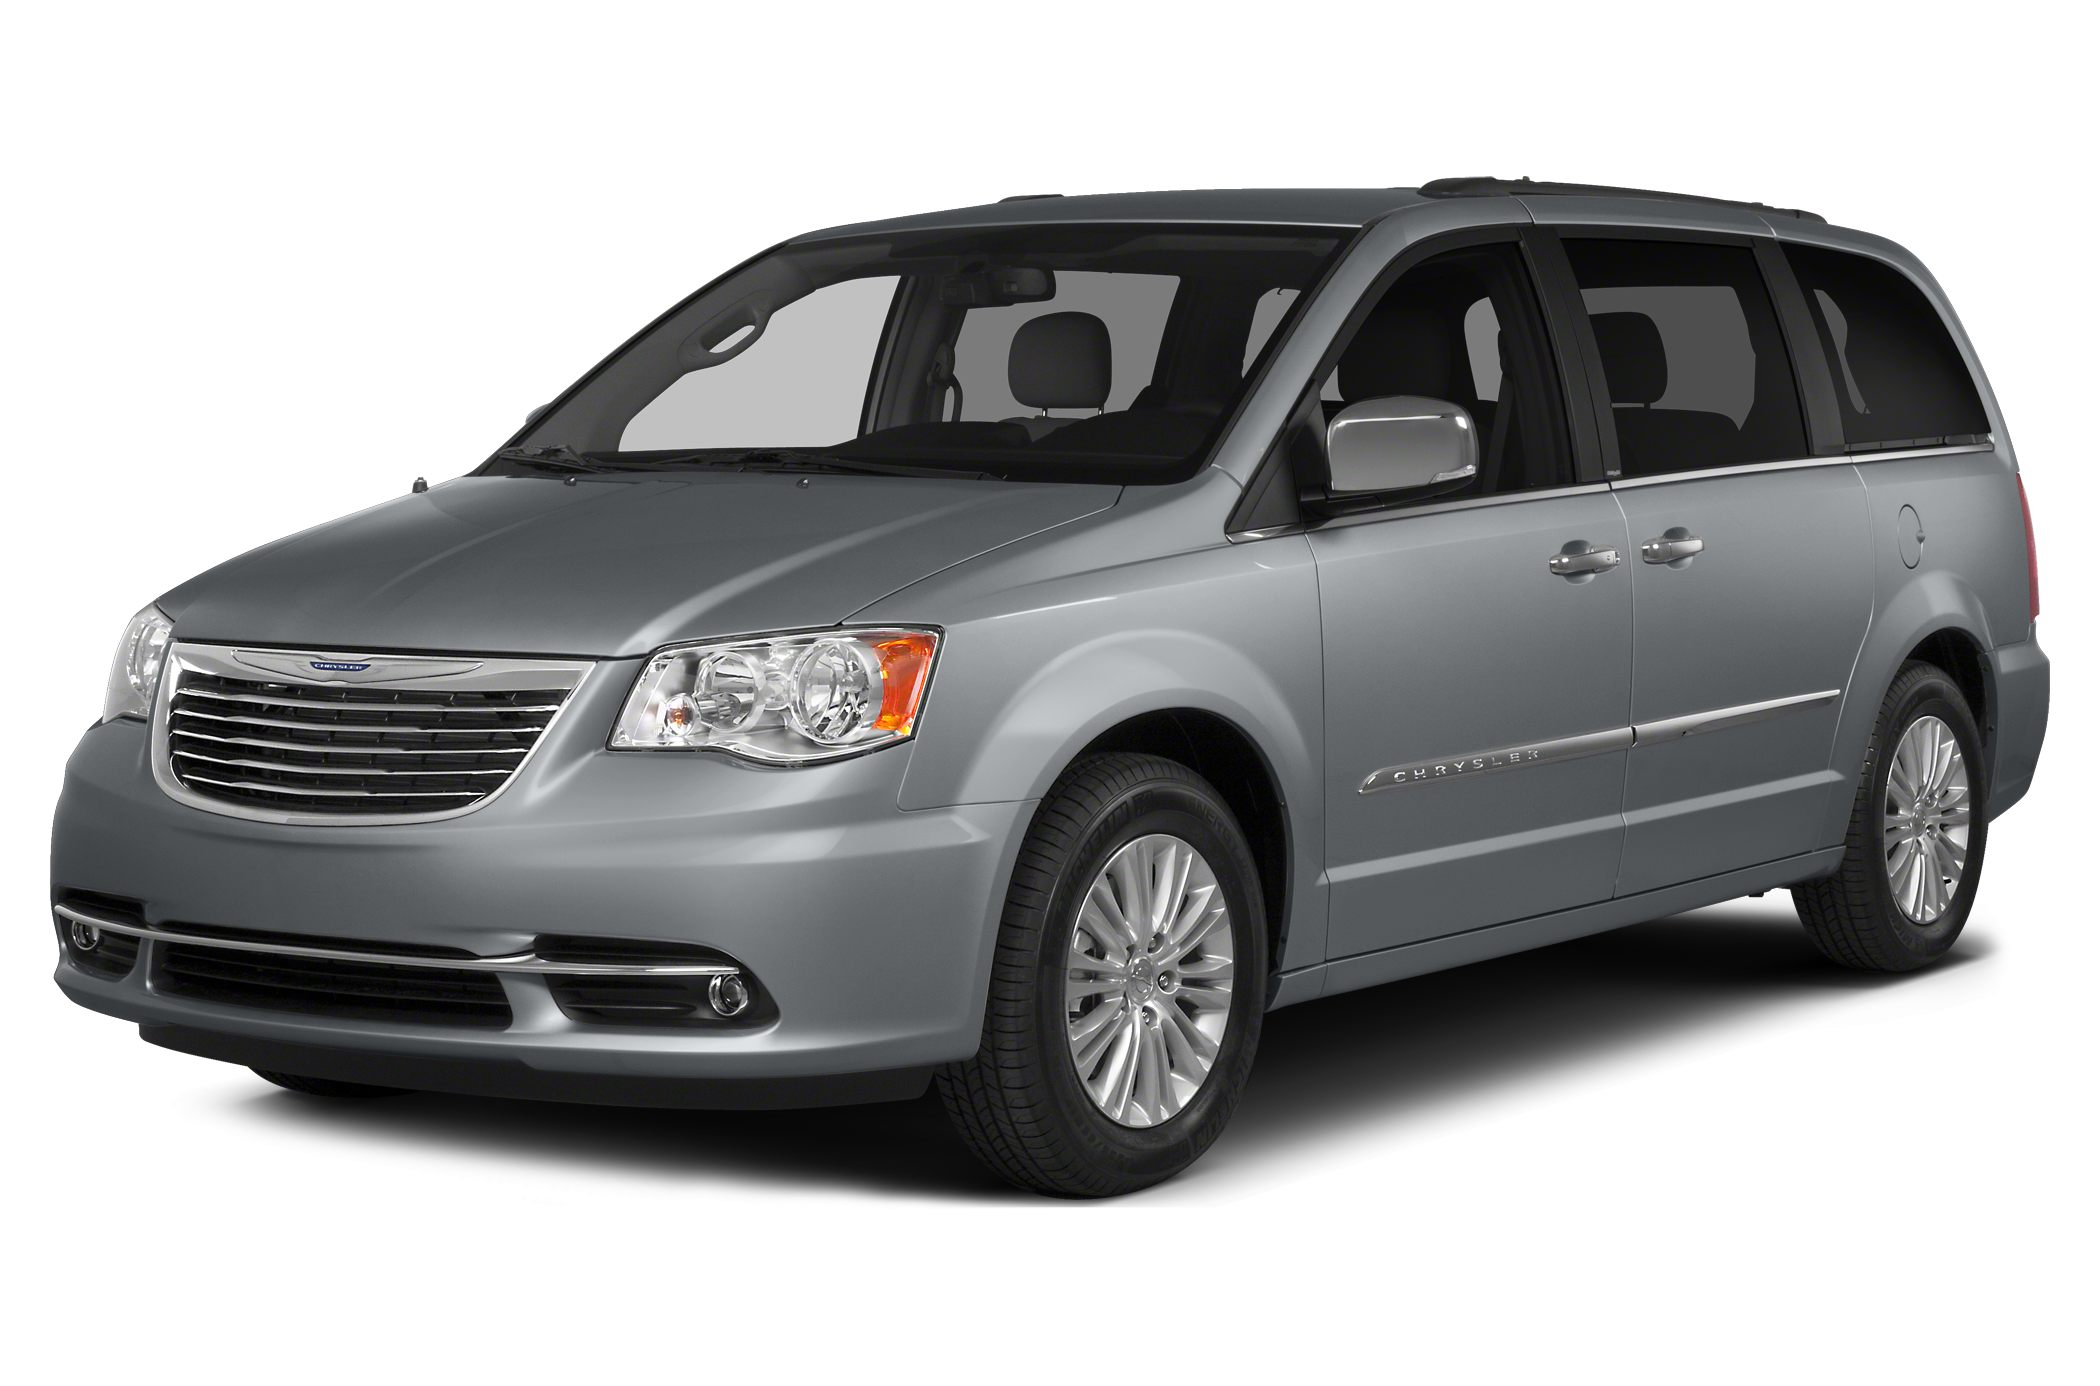 2014 Chrysler Town & Country Touring Minivan for sale in Winnsboro for $20,886 with 37,017 miles